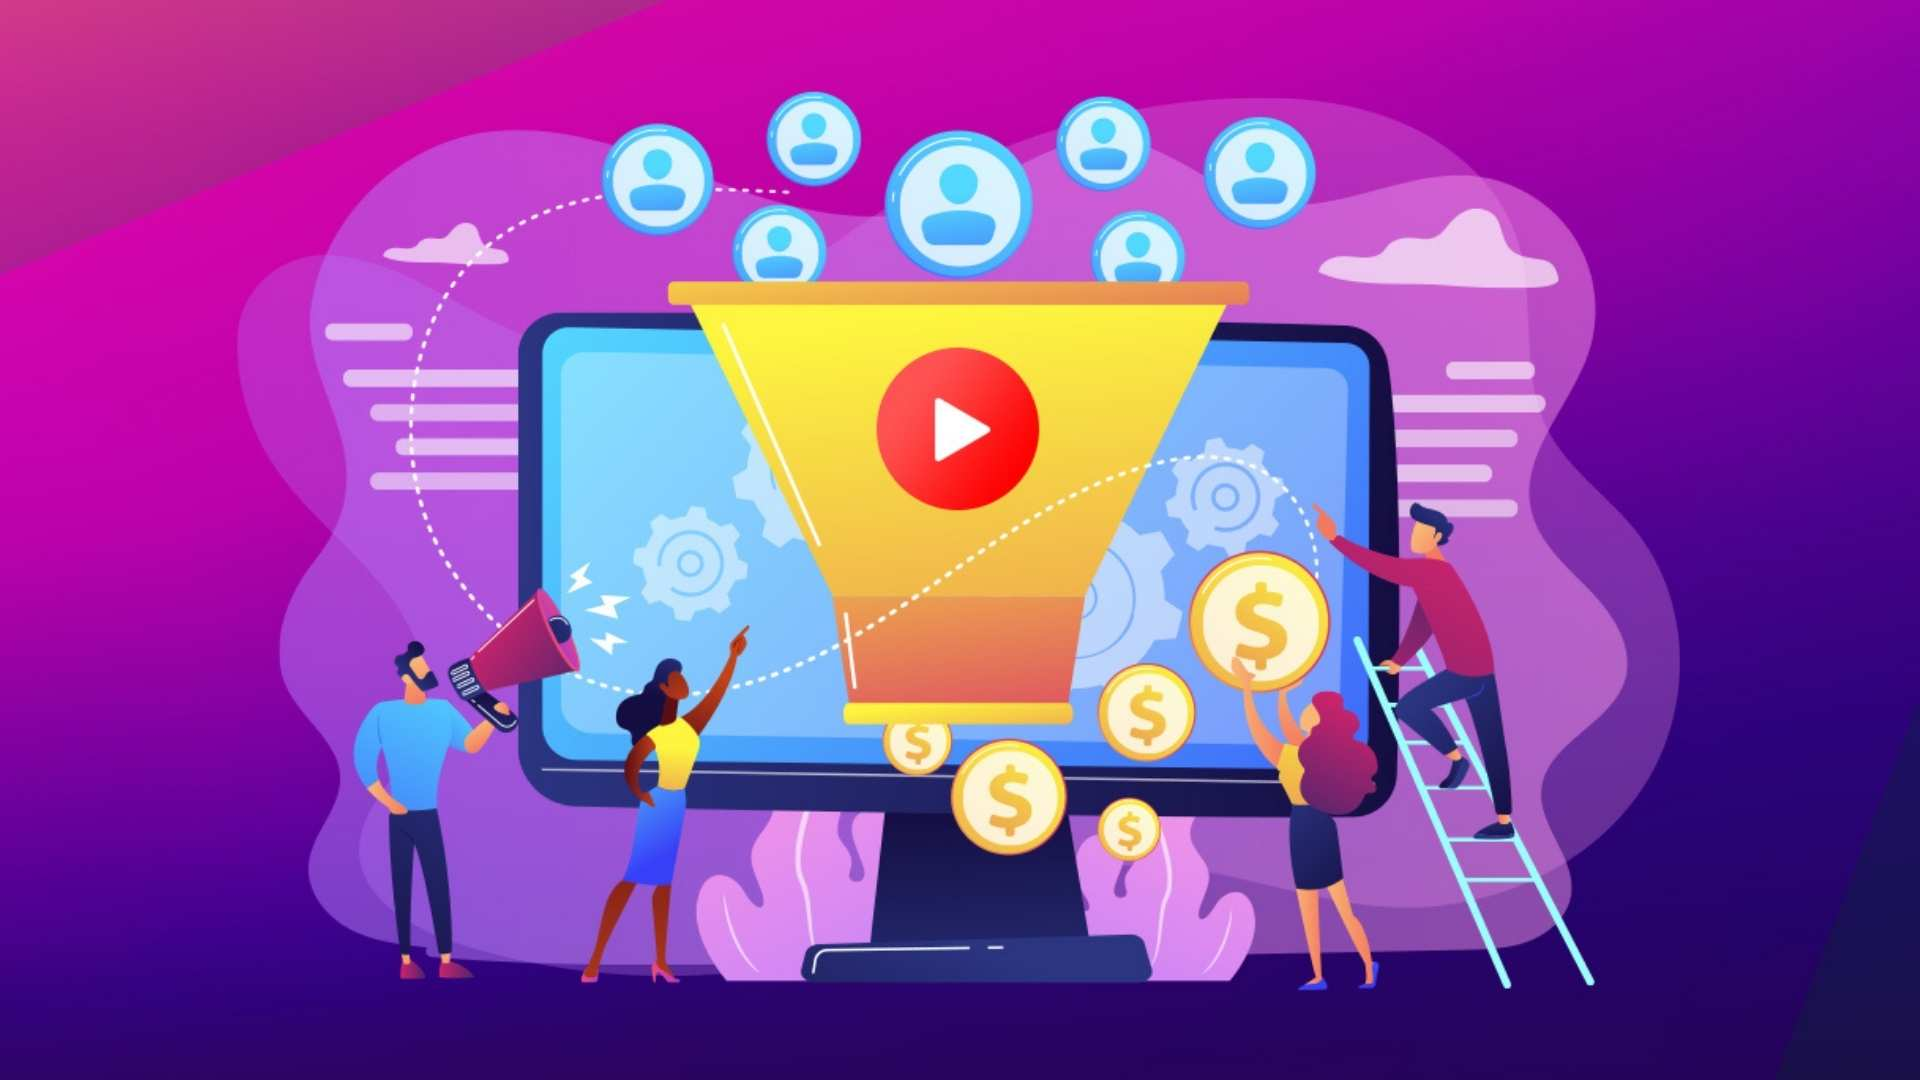 Animated Video for Services VS Animated Video for Products